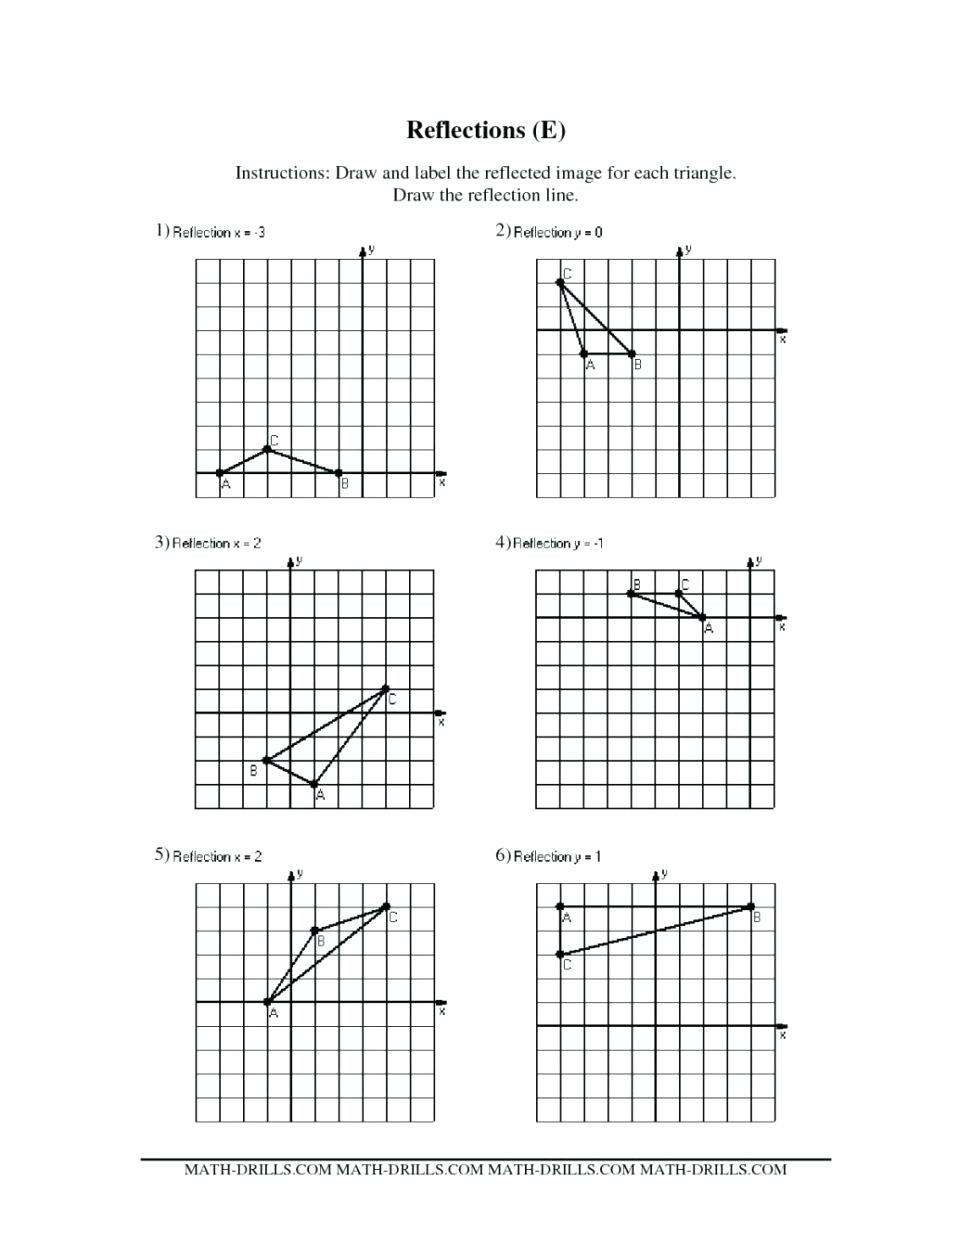 Geometry Transformation Composition Worksheet Answers Reflections Worksheet Answer Key Nidecmege